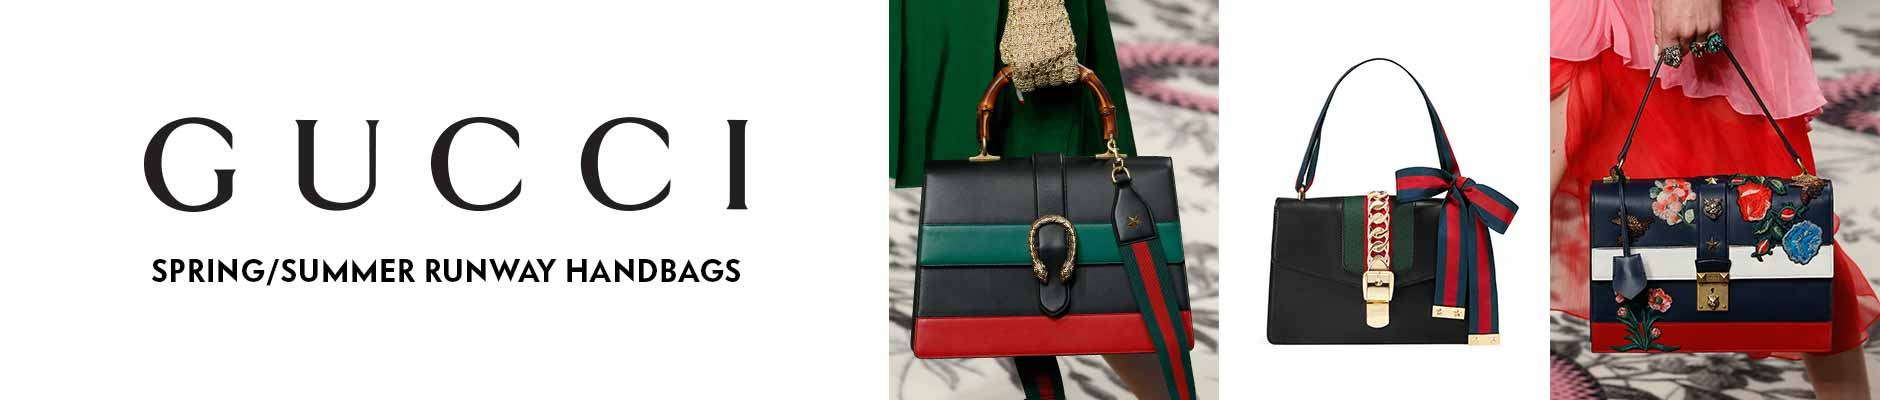 Gucci - Spring/Summer Runway Handbags